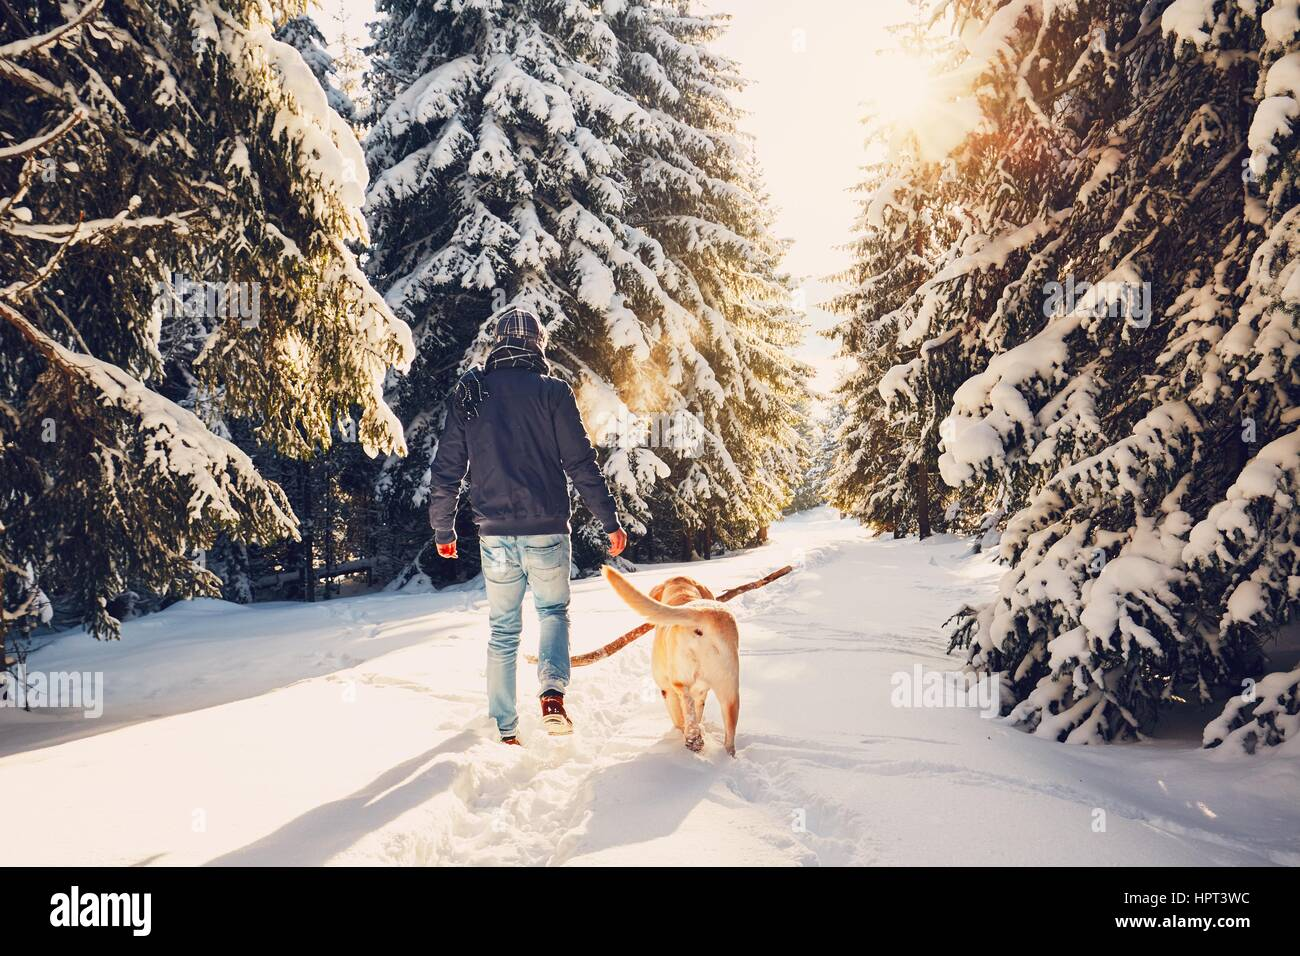 Trip to winter nature. Young man in warm clothes is walking with his labrador in snowy forest. - Stock Image